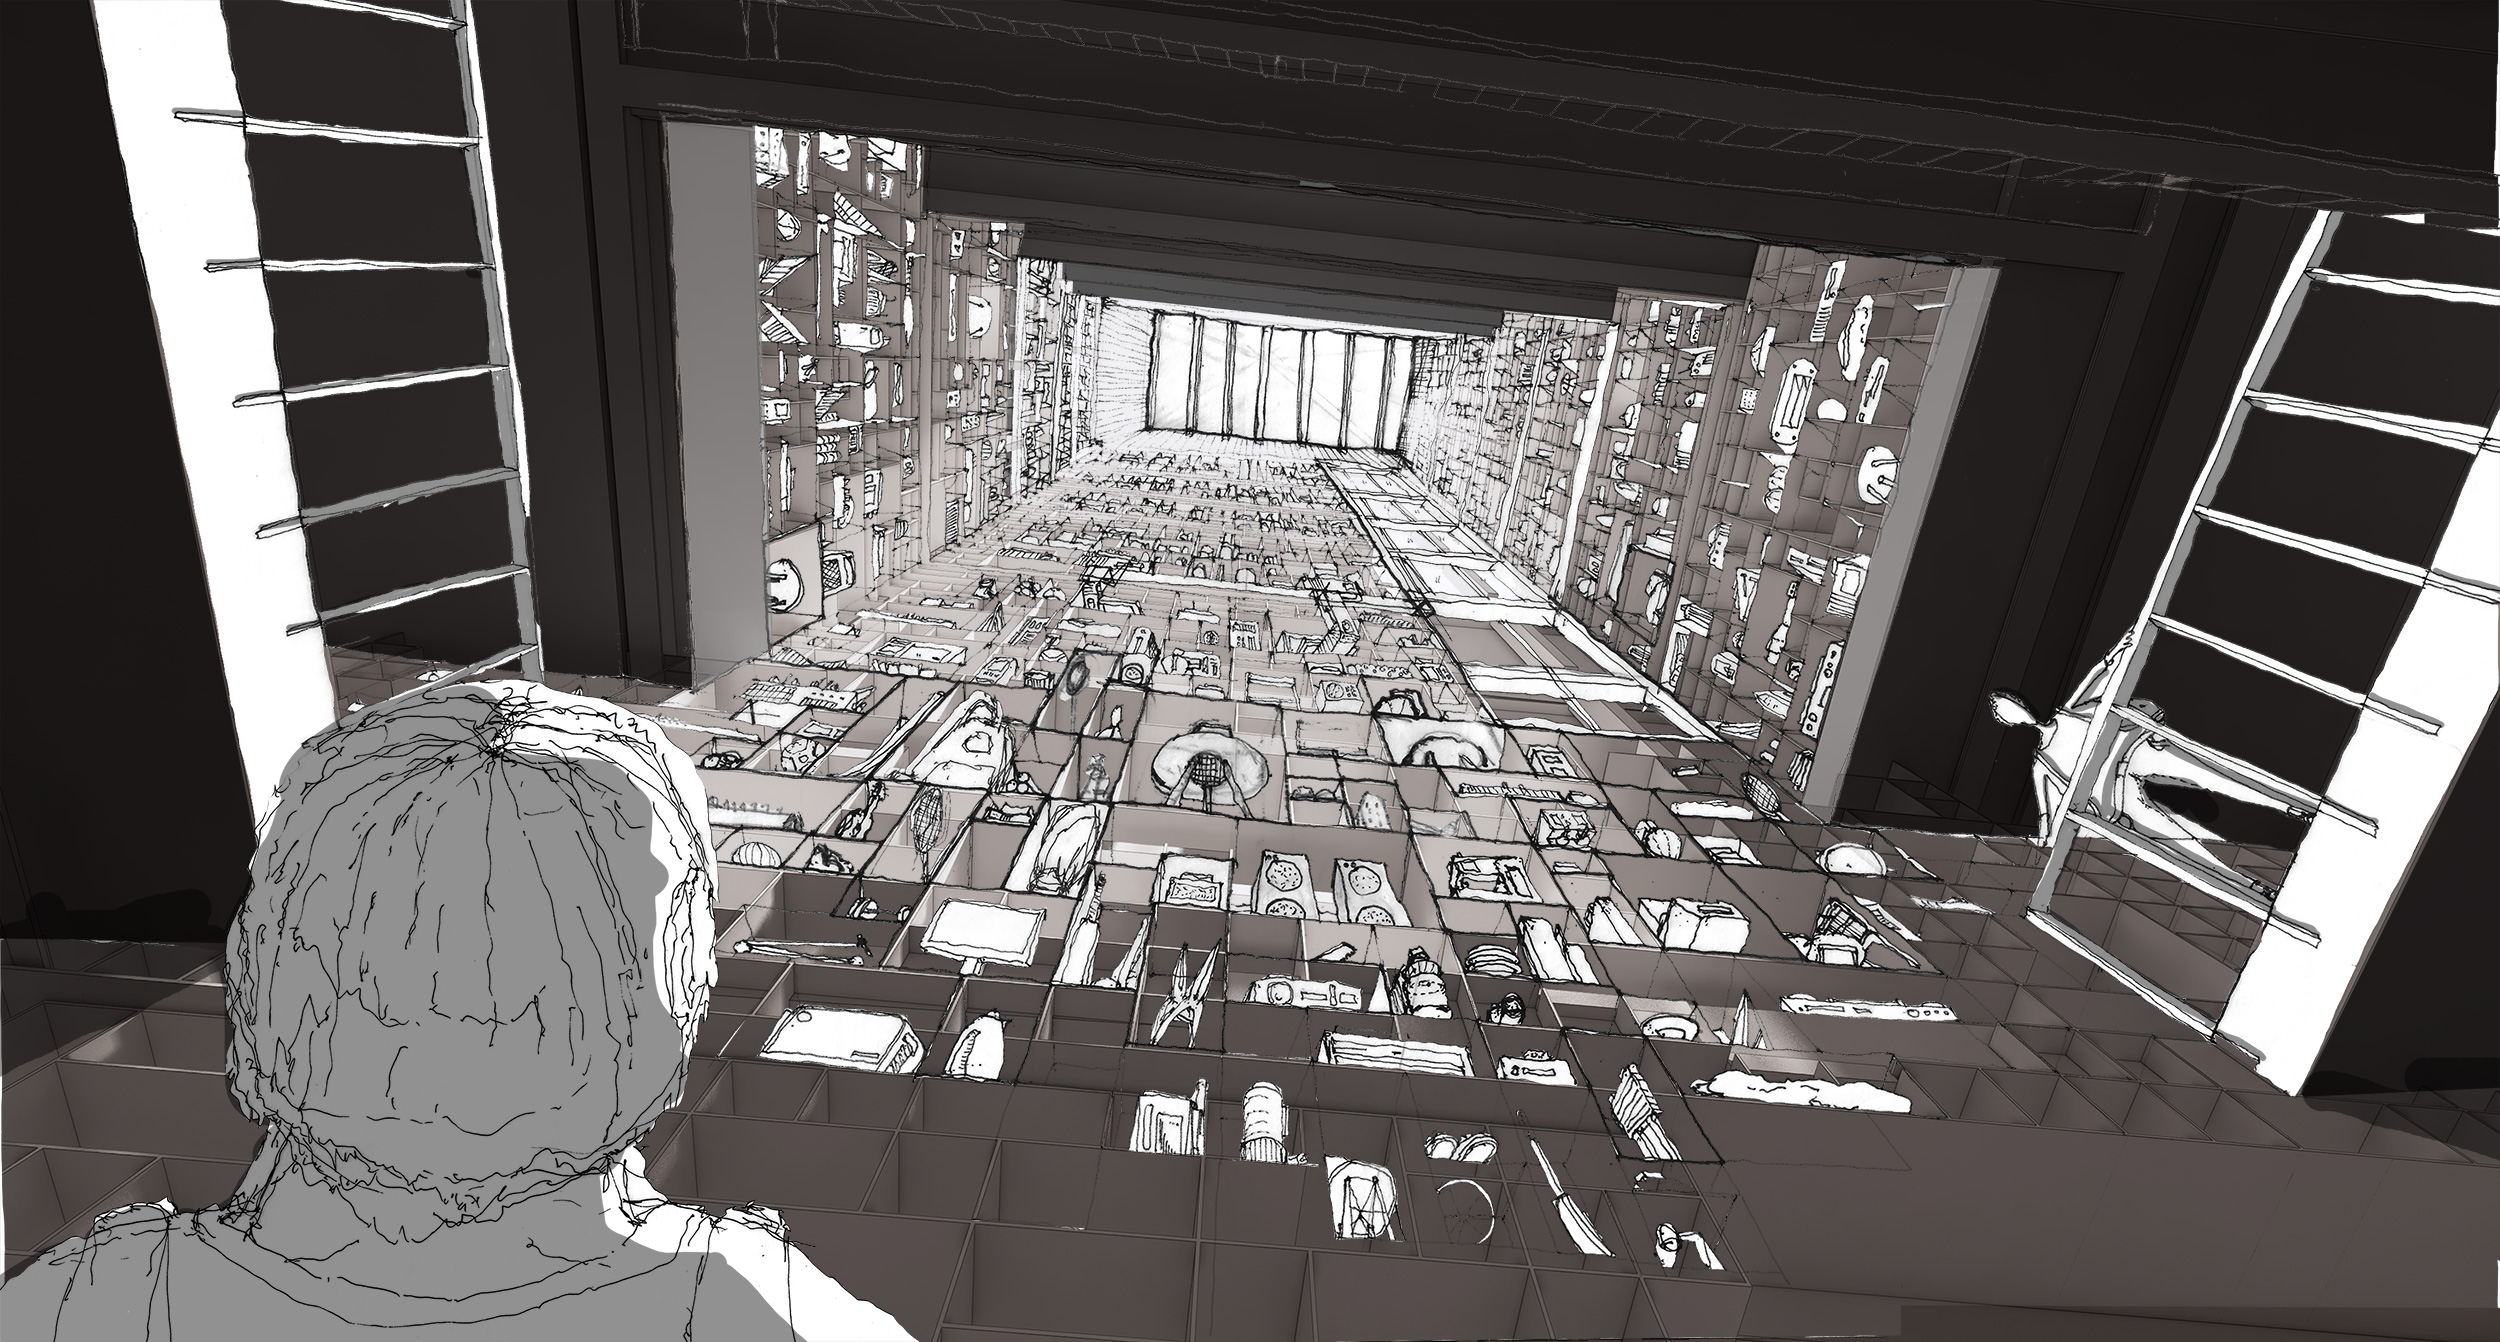 View from base of the tower of the curious everyday